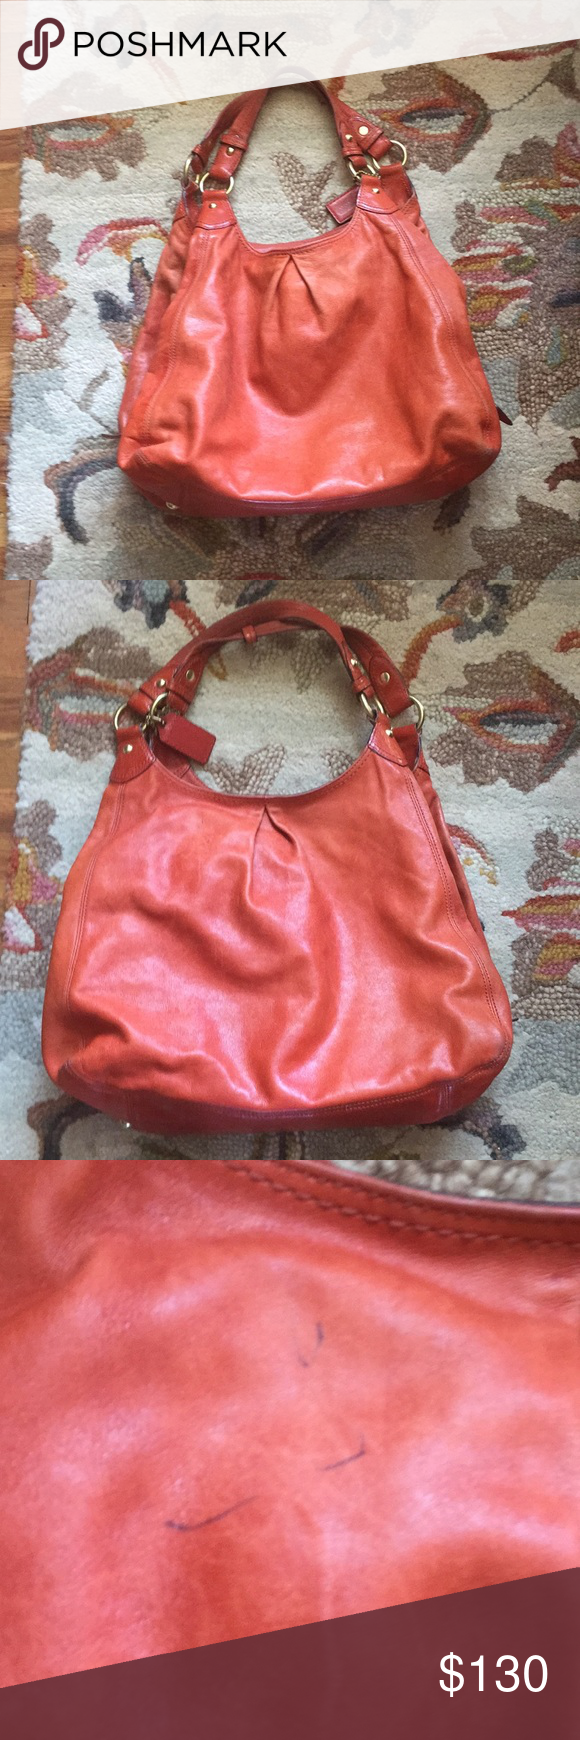 6f496d8072 COACH 13902 Extra Large Madison Maggie pleated bag COACH 13902 Extra Large  Madison Maggie pleated Leather